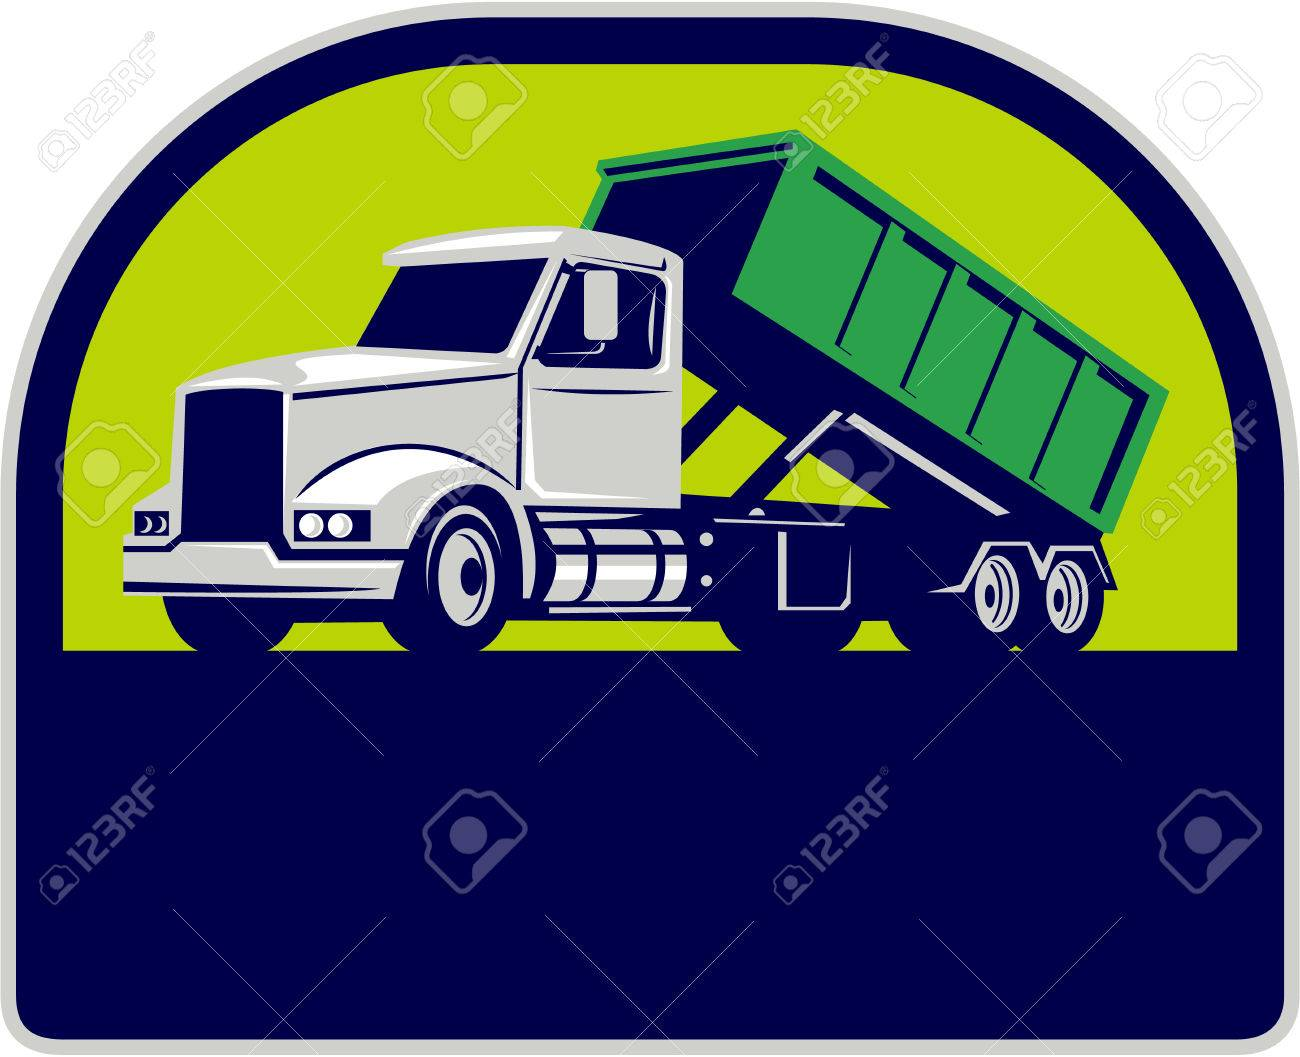 Illustration of a roll-off truck with container bin on back viewed from side set inside half circle done in retro style. - 57958547